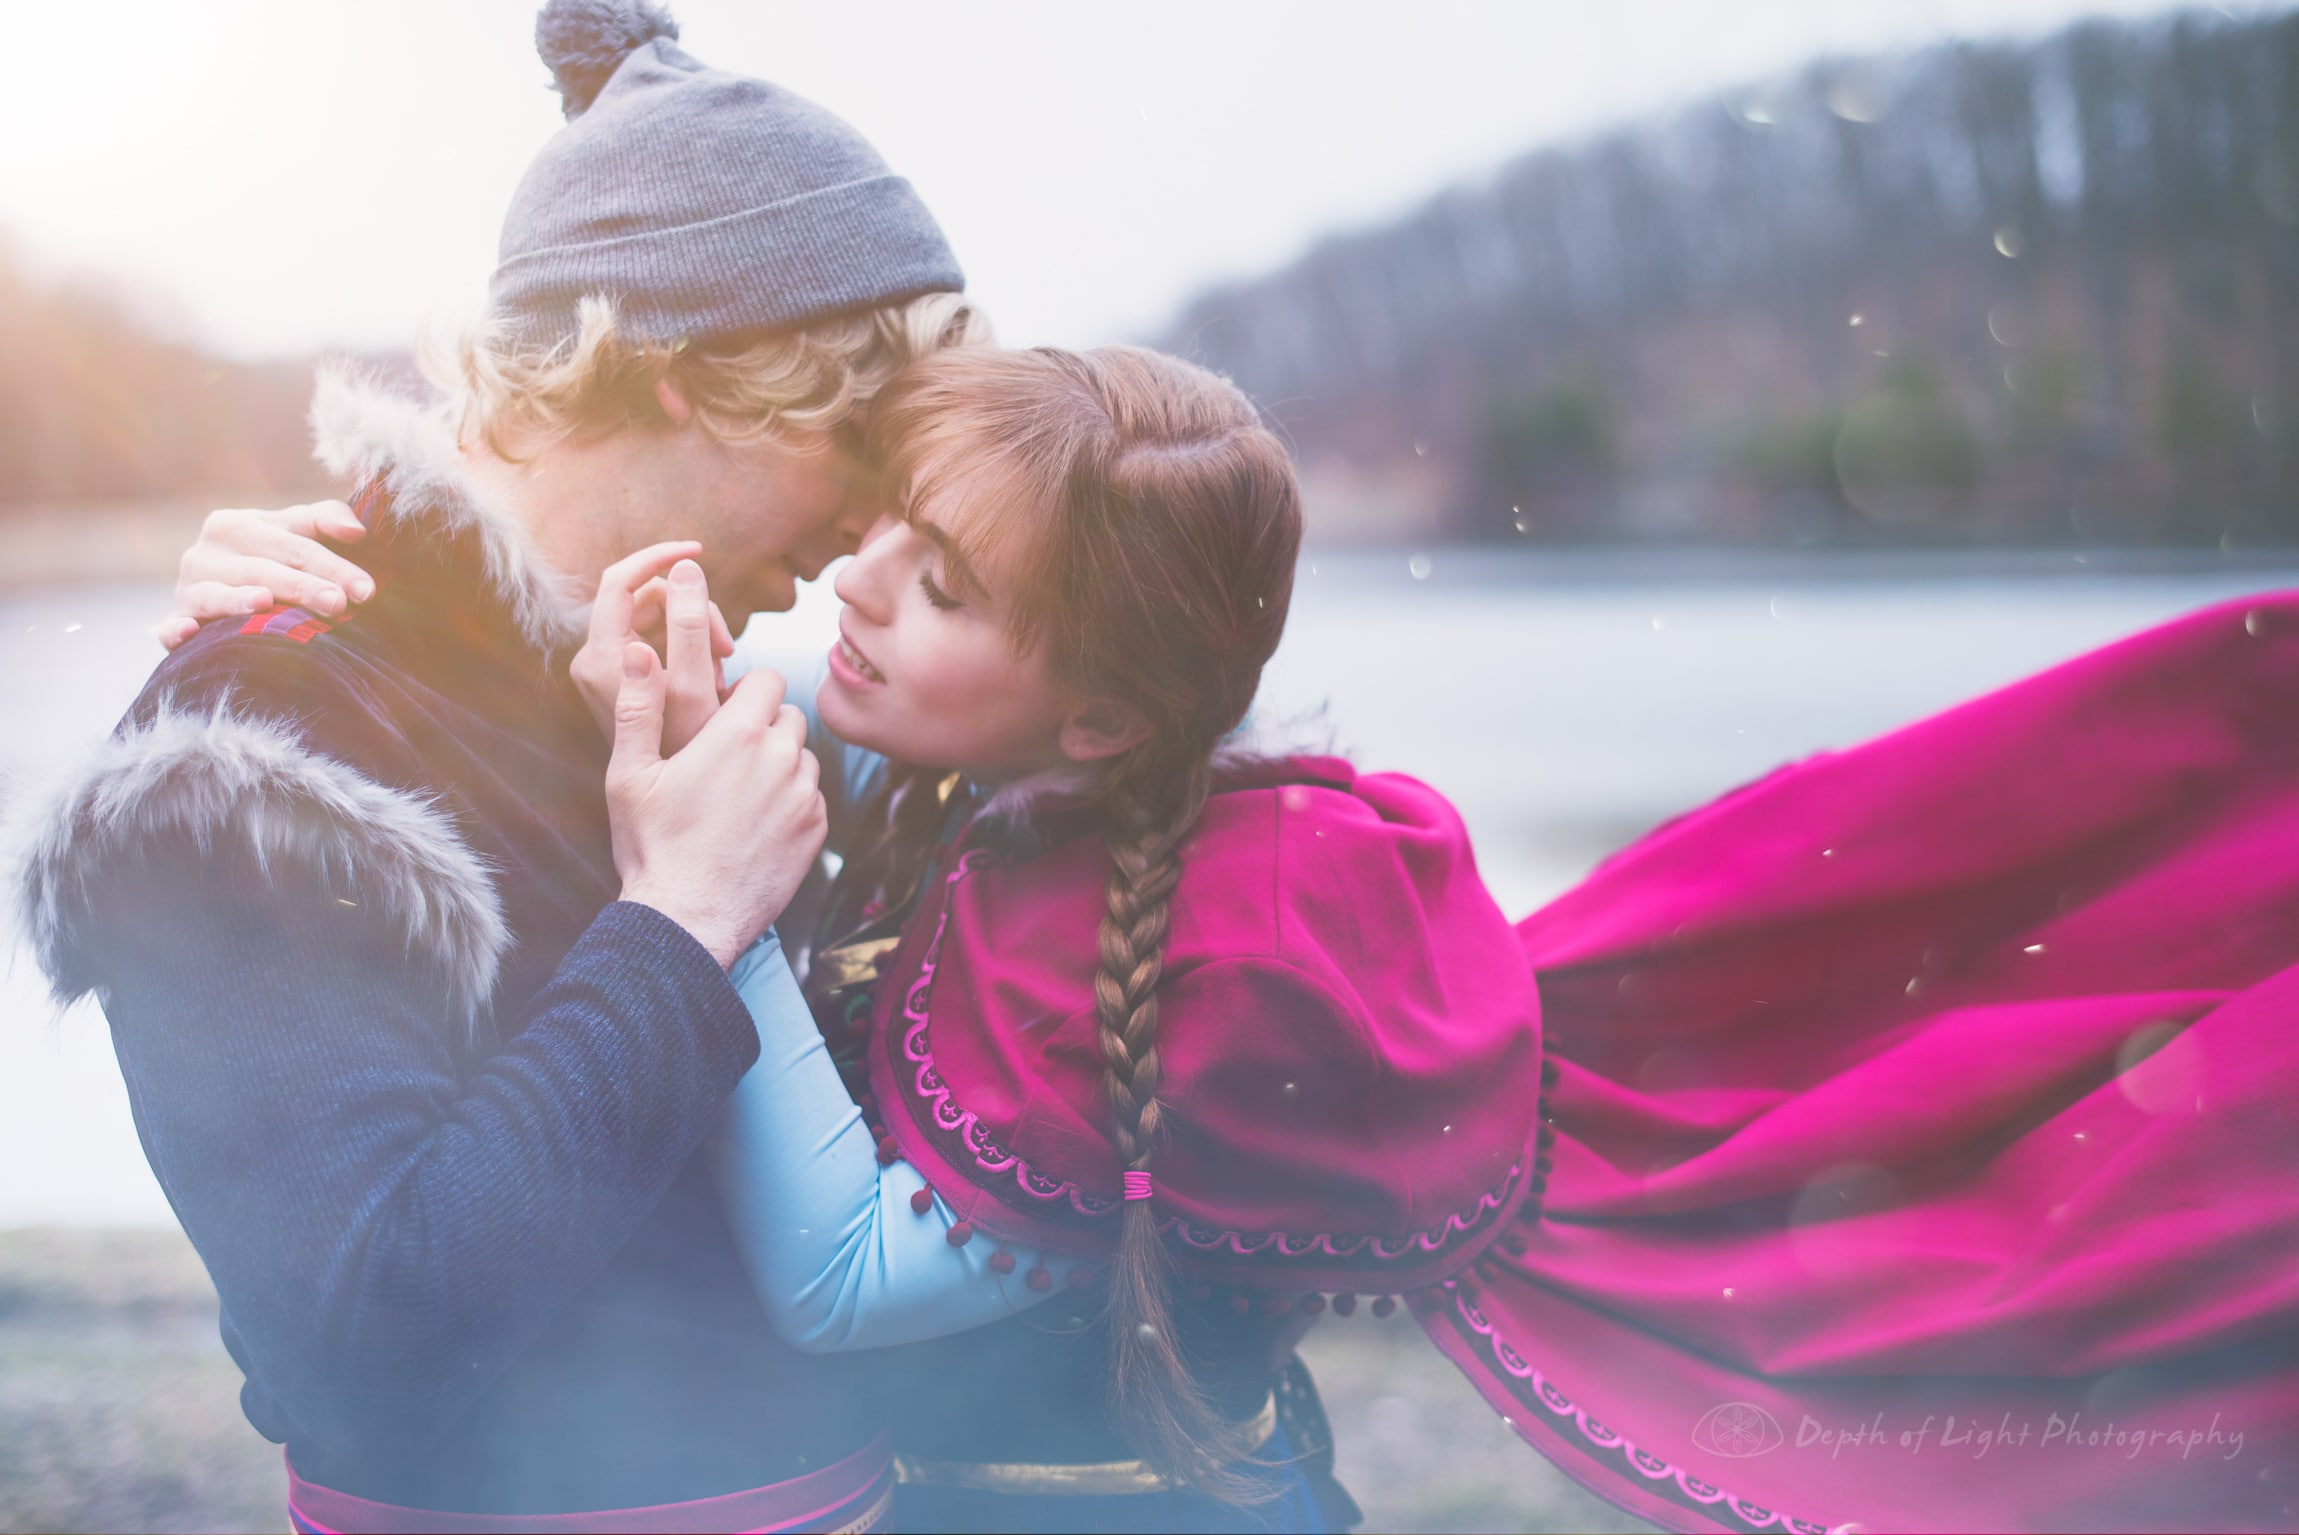 Cosplay Tender Romantic Moments Anna and Kristoff Cosplayers from Disney's Frozen